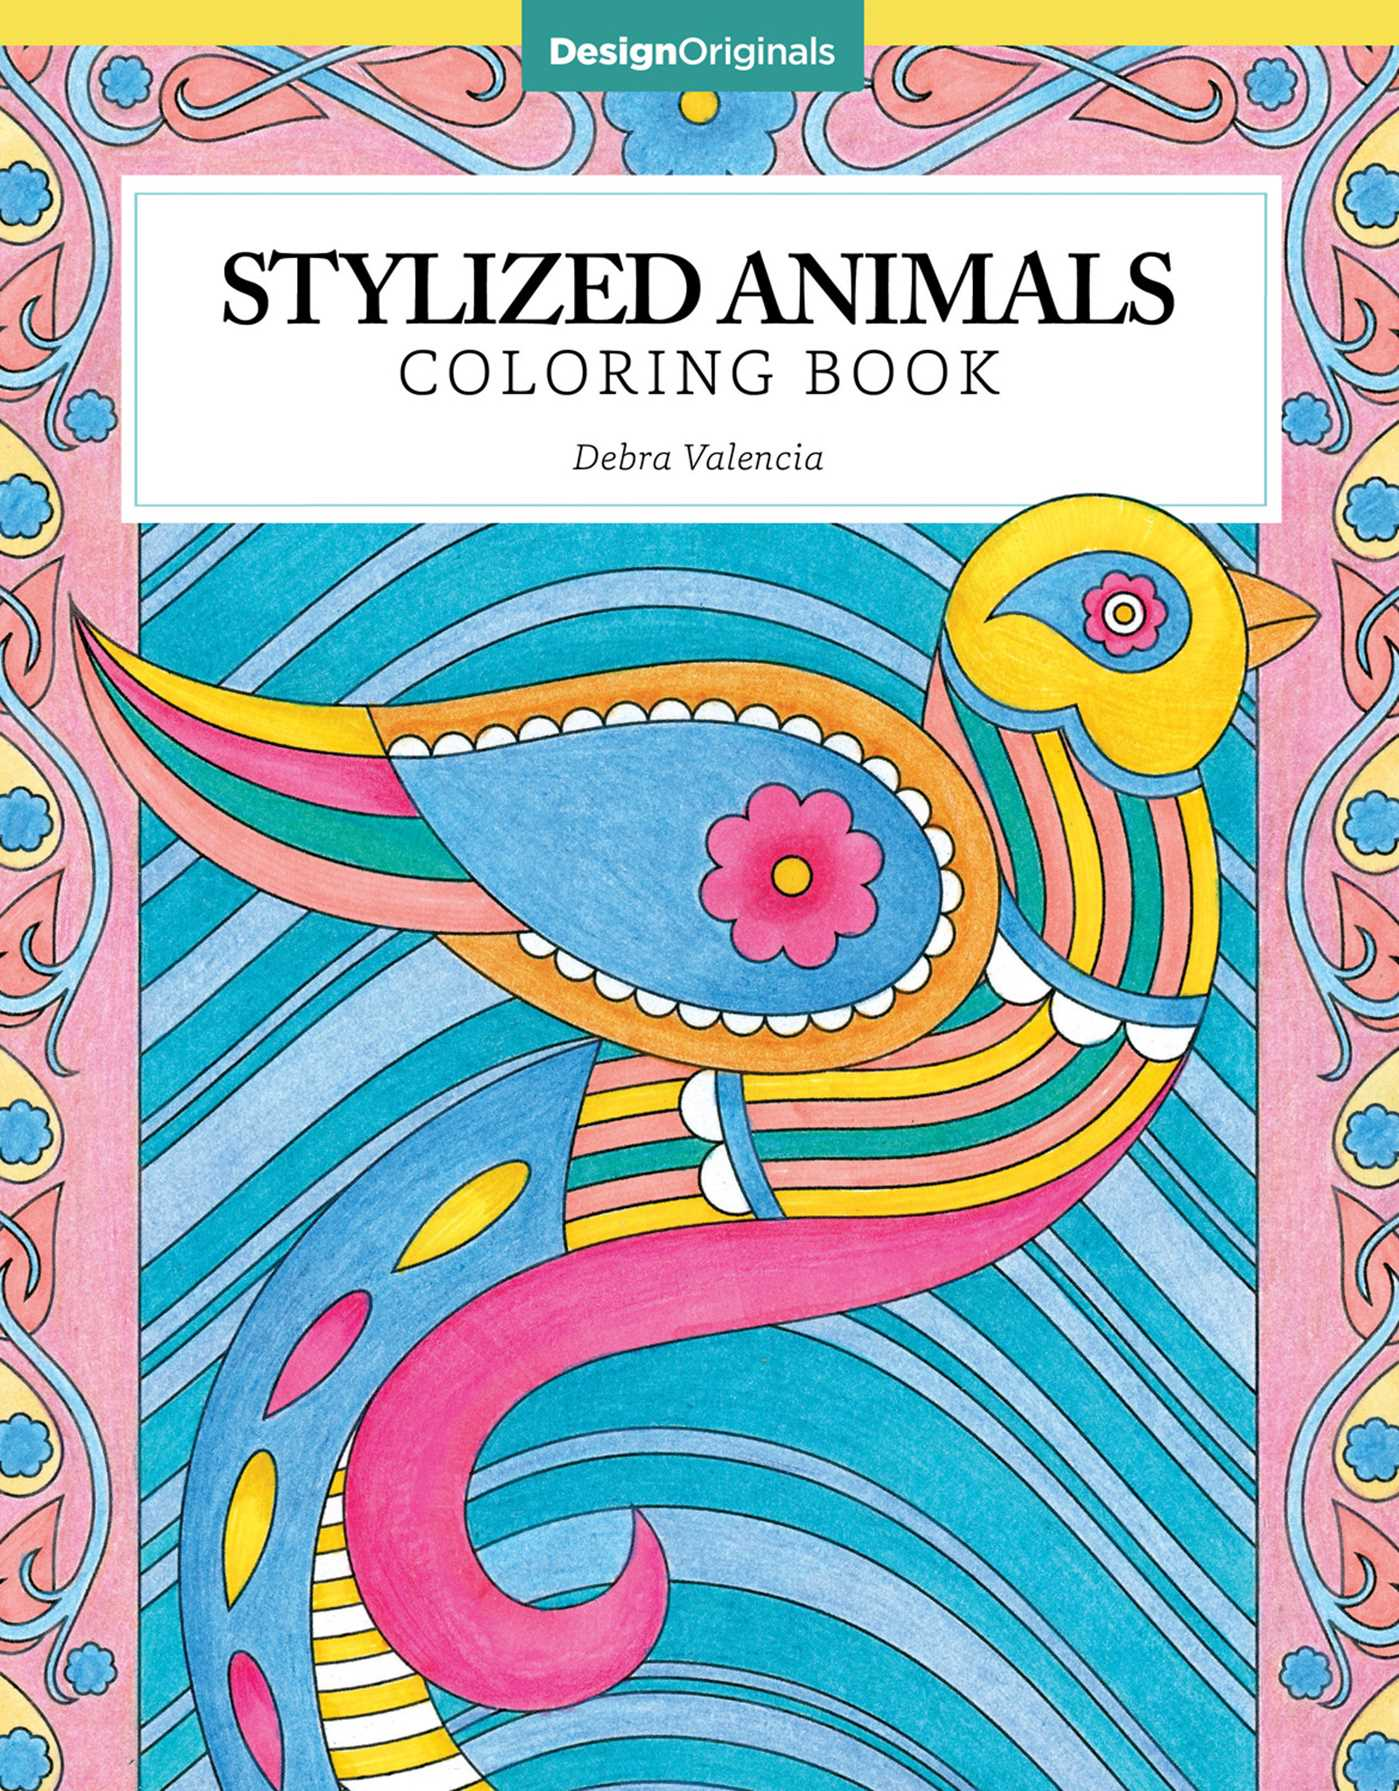 Colourtation anti stress colouring book for adults volume 1 - Anti Stress Colouring Books Dymocks Colourtation Anti Stress Colouring Book For Adults Volume 1